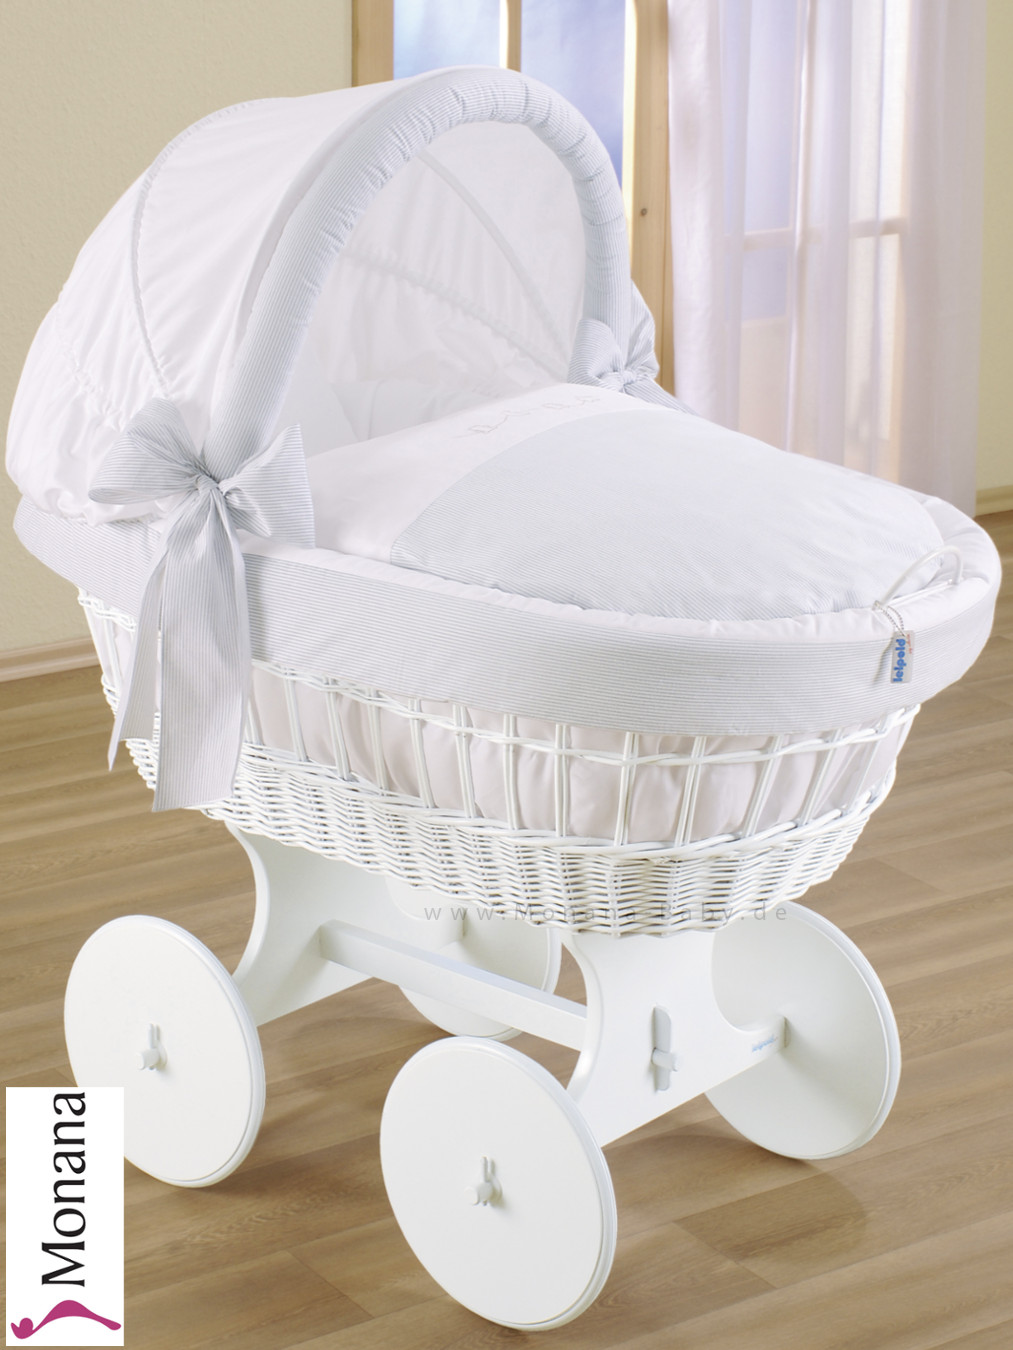 Leipold crib for sale - 00 957 538 050 Leipold Bollerwagen Charme Leipold Wicker Drape Crib With Hood And Big Wheels White